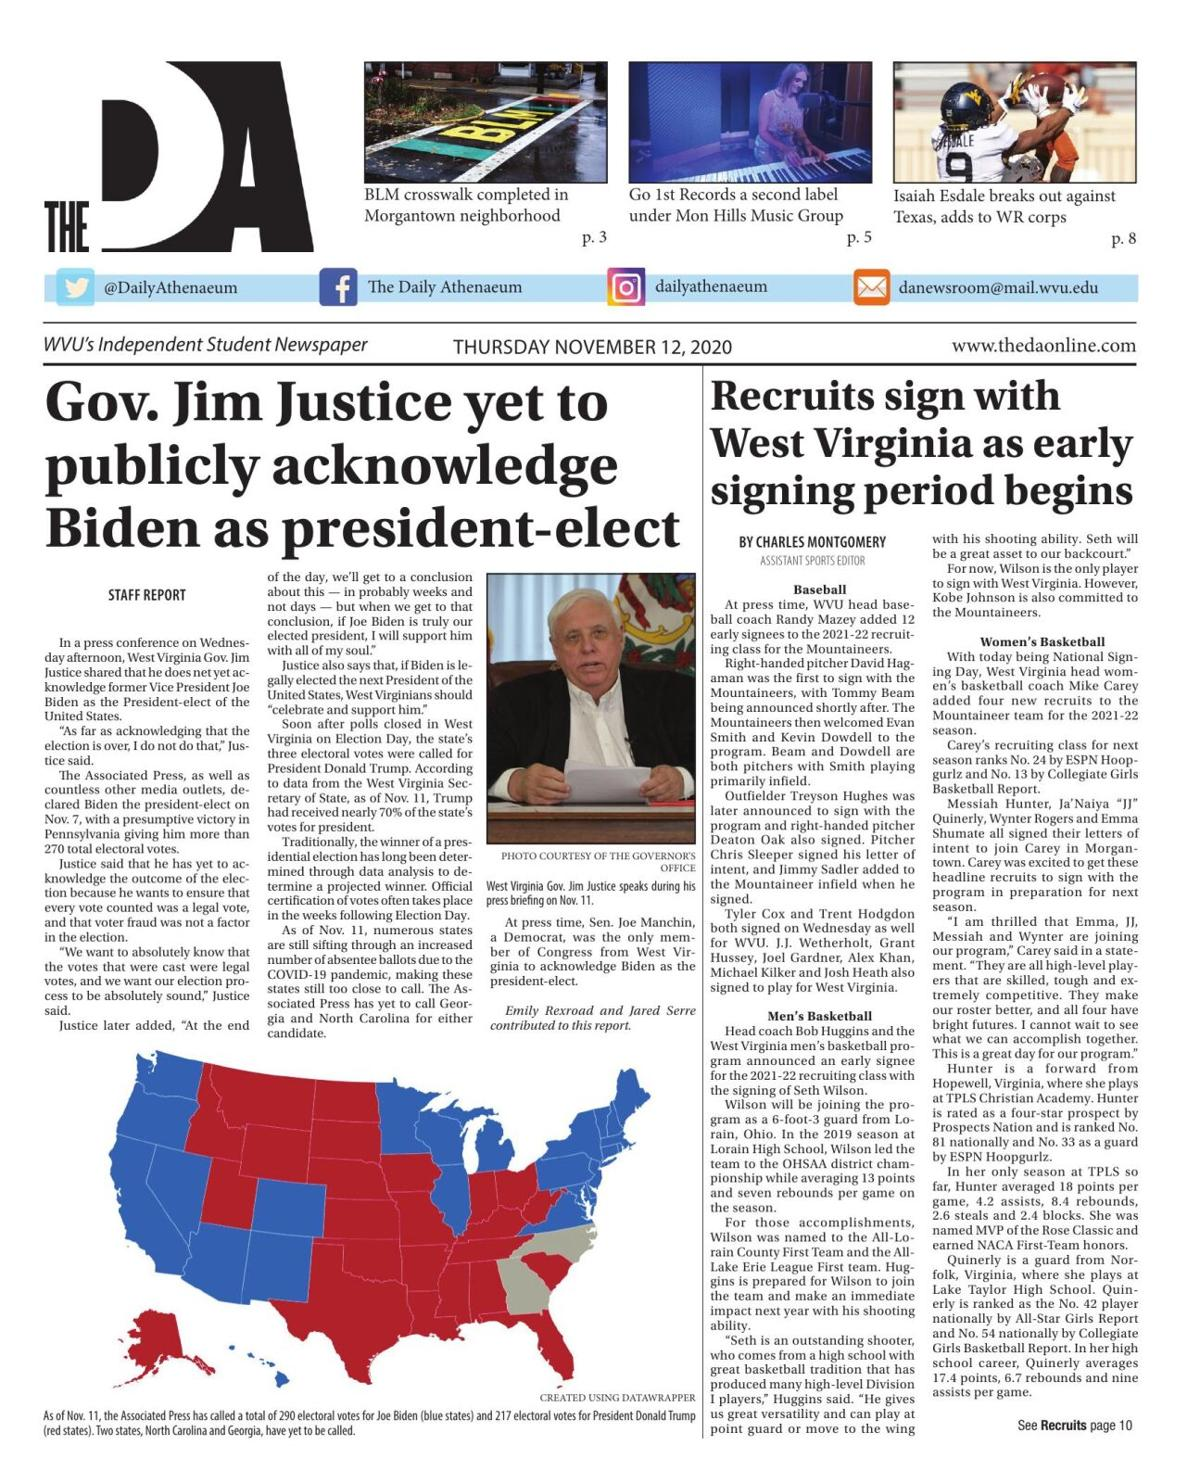 The Daily Athenaeum's edition on November 12, 2020.